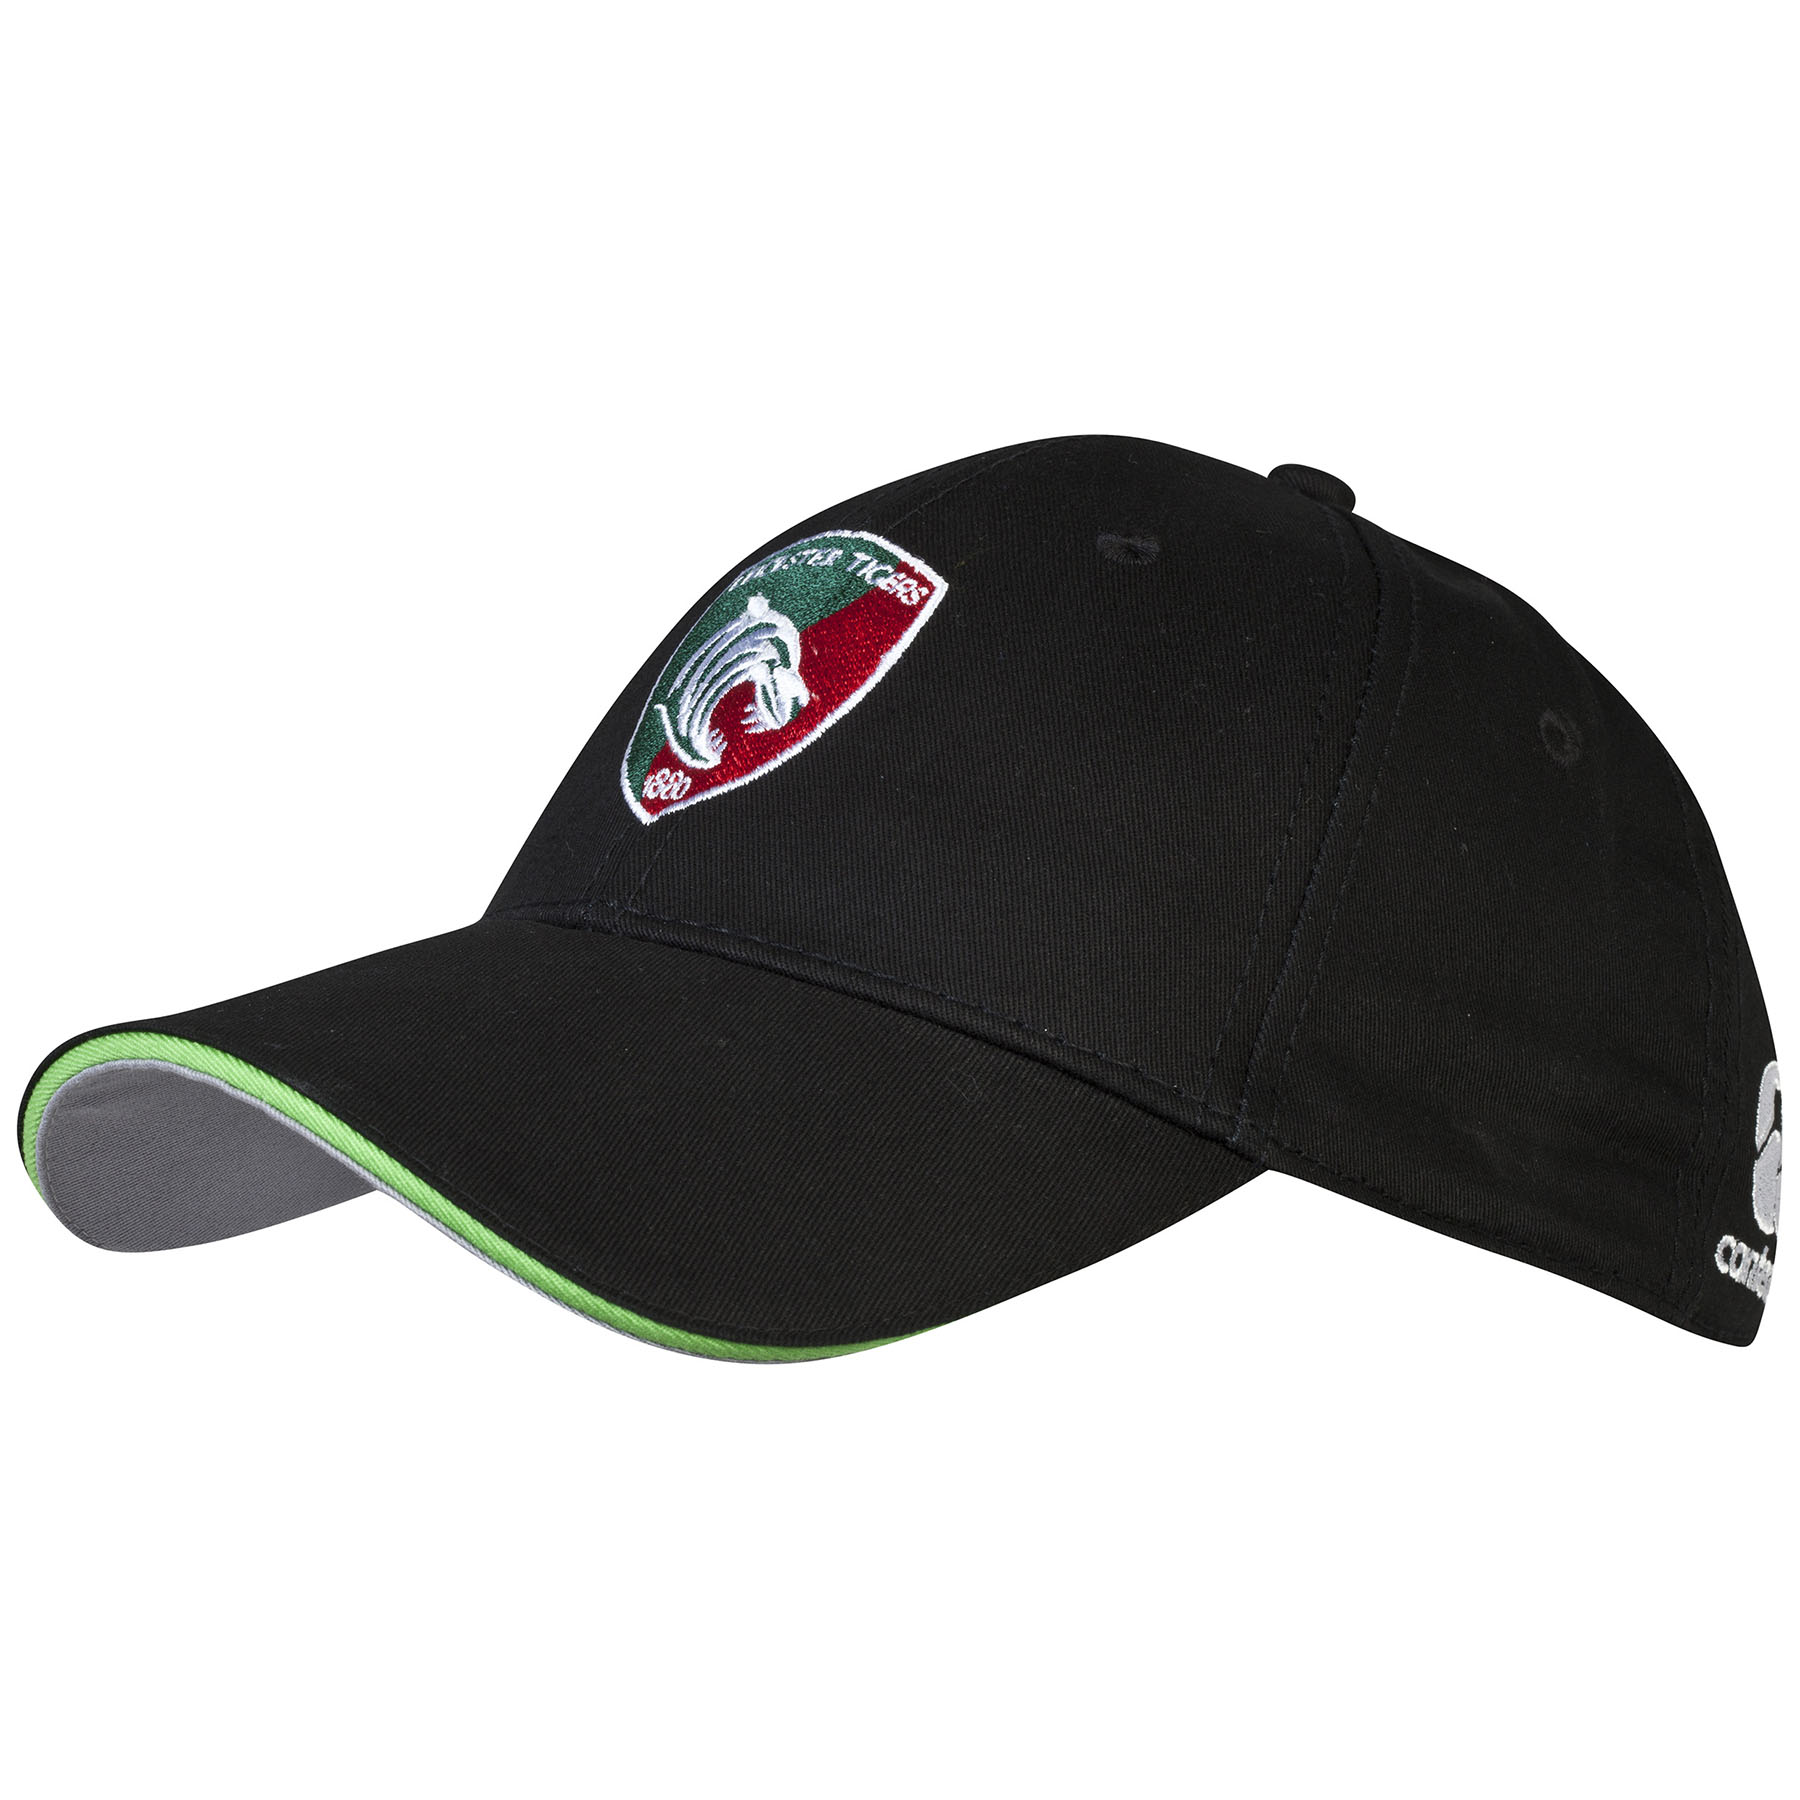 Leicester Tigers Cotton Drill Graphic Cap - fitted Black